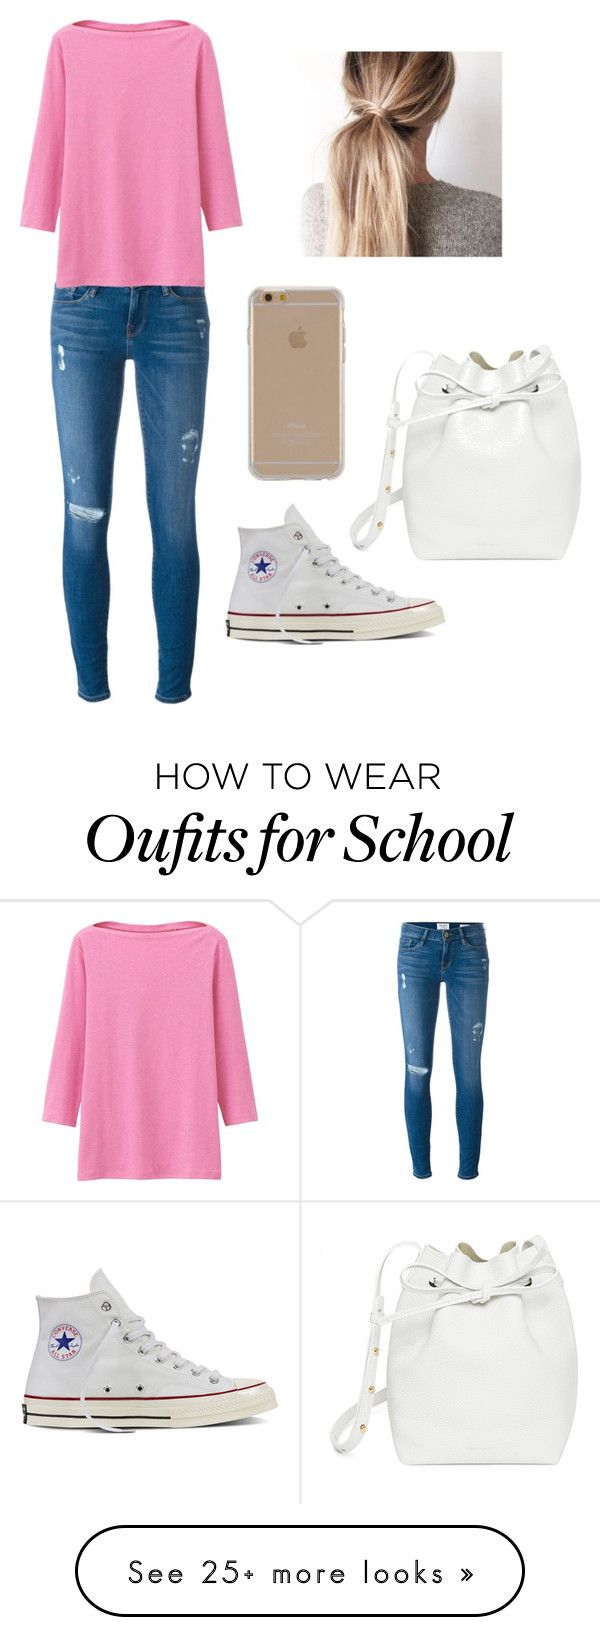 """School"" by tessajeane on Polyvore featuring Frame Denim, Uniqlo, Converse, Mansur Gavriel and Agent 18"